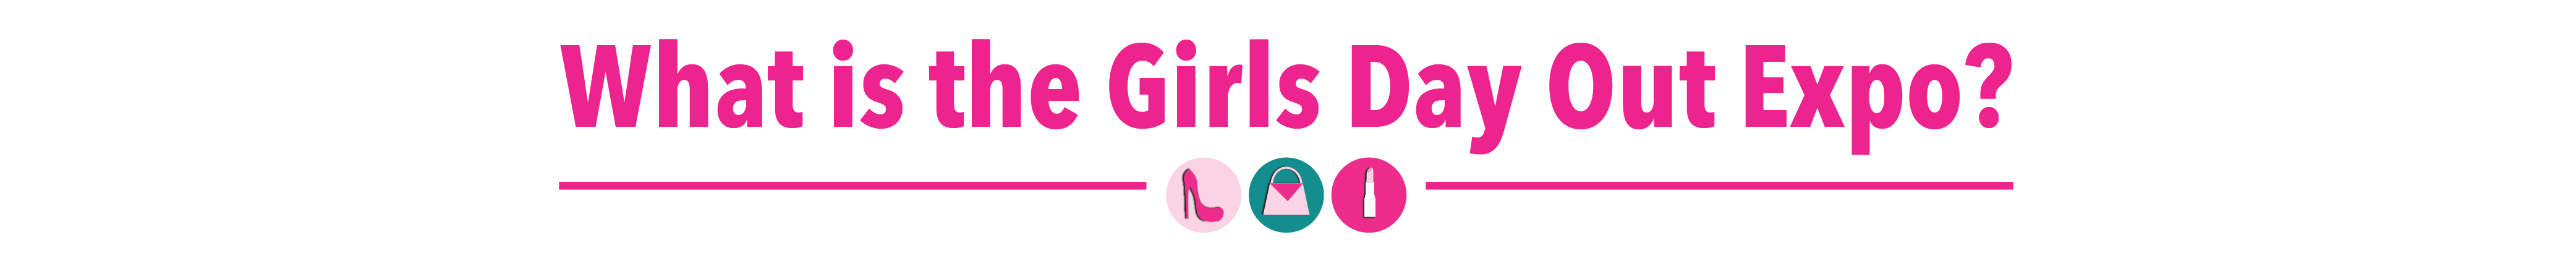 What is Girl's Day Out Expo